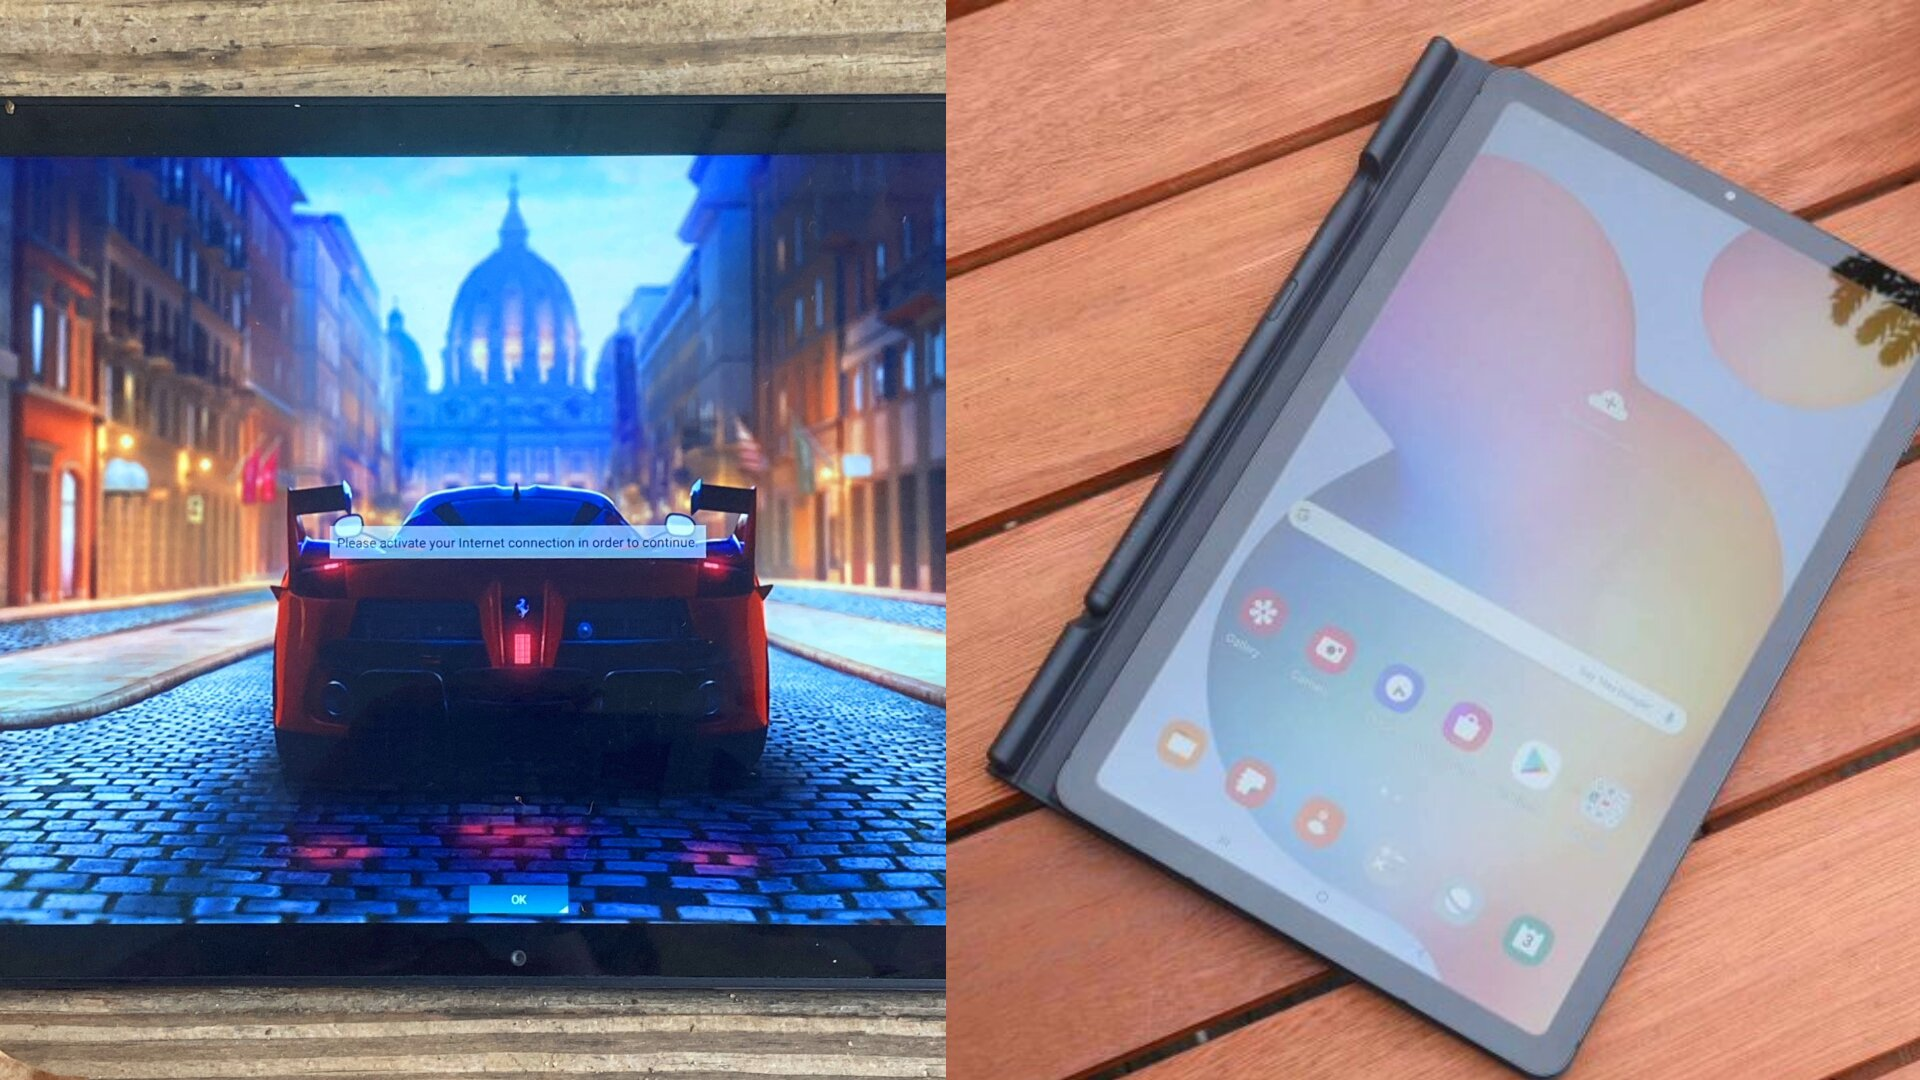 Samsung Galaxy Tab A7 Vs Galaxy Tab S6 Lite Battle Of The Midrange Tablets Laptop Mag